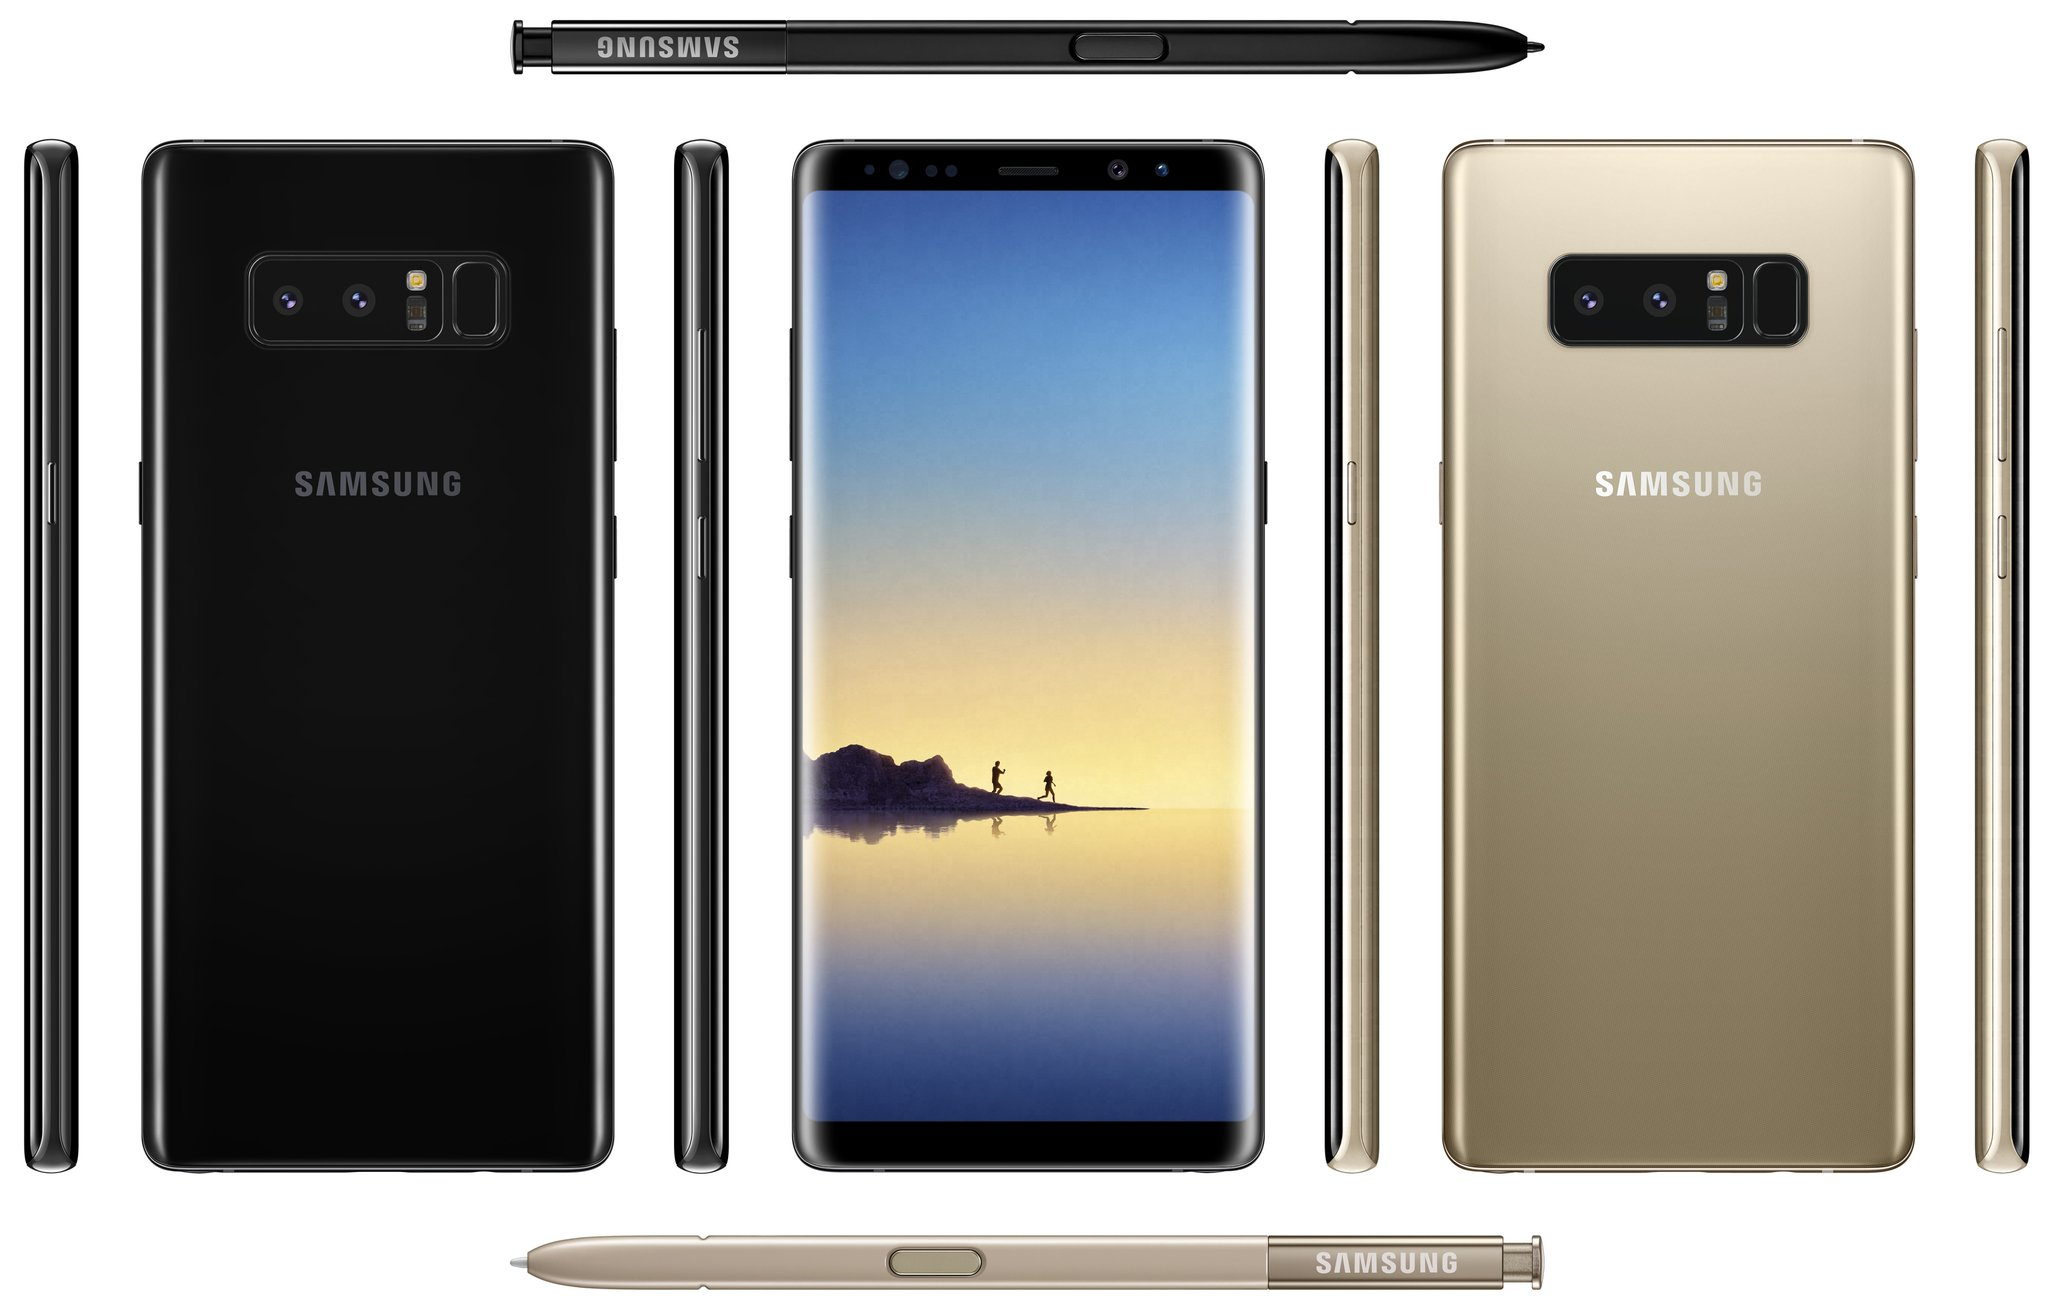 Samsung Galaxy Note 8 first look Evan Blass